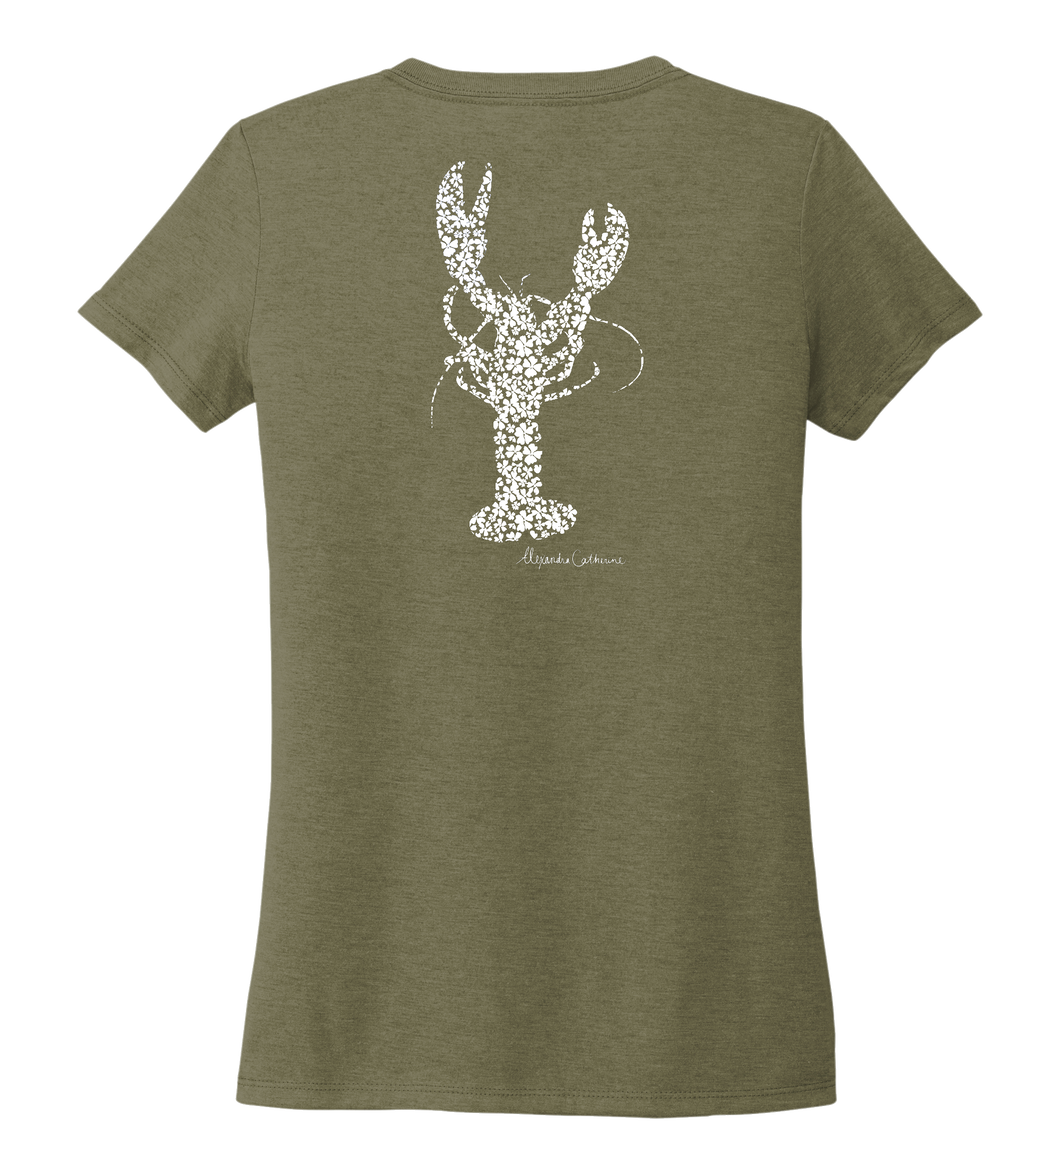 Alexandra Catherine, Fleur White Lobster, Women's V-neck T-shirt in Earthy Green